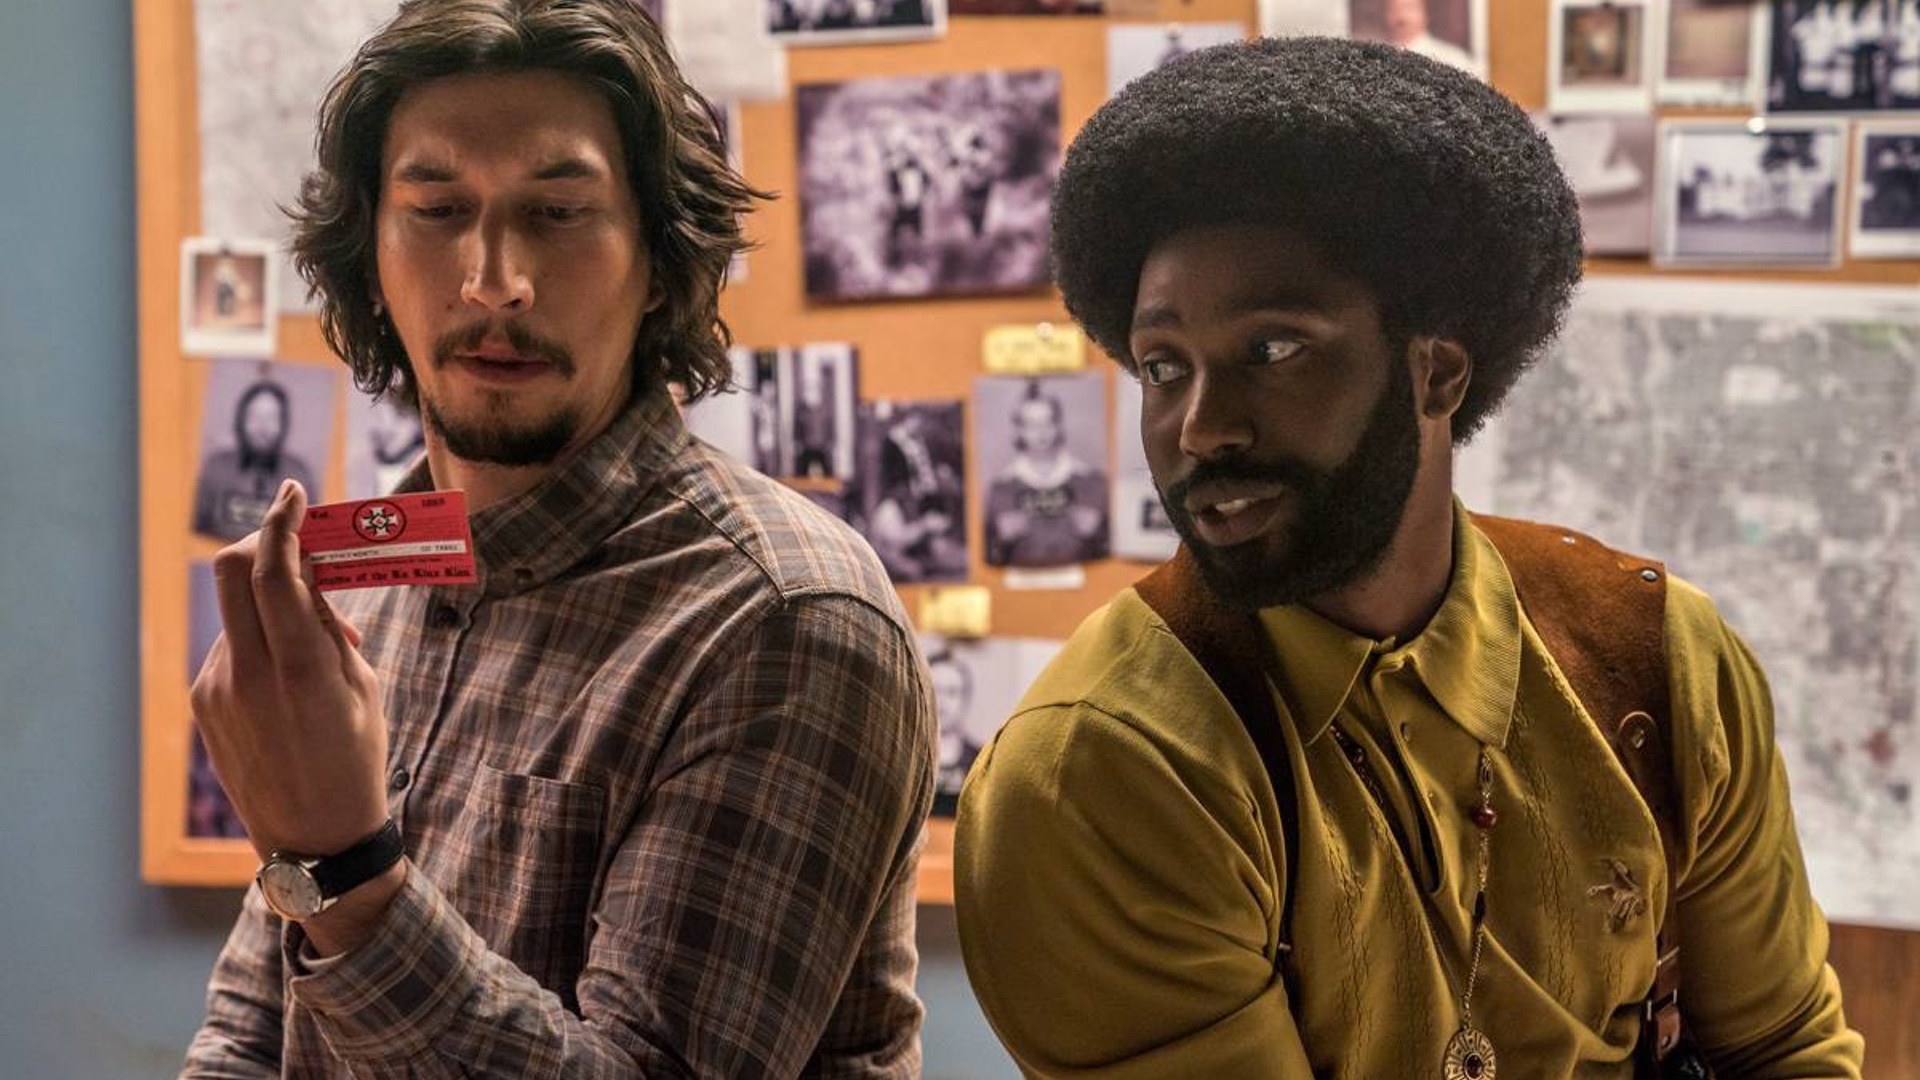 Trailer+For+Director+Spike+Lee's+Buddy+Cop+Movie+BLACKKKLANSMAN1